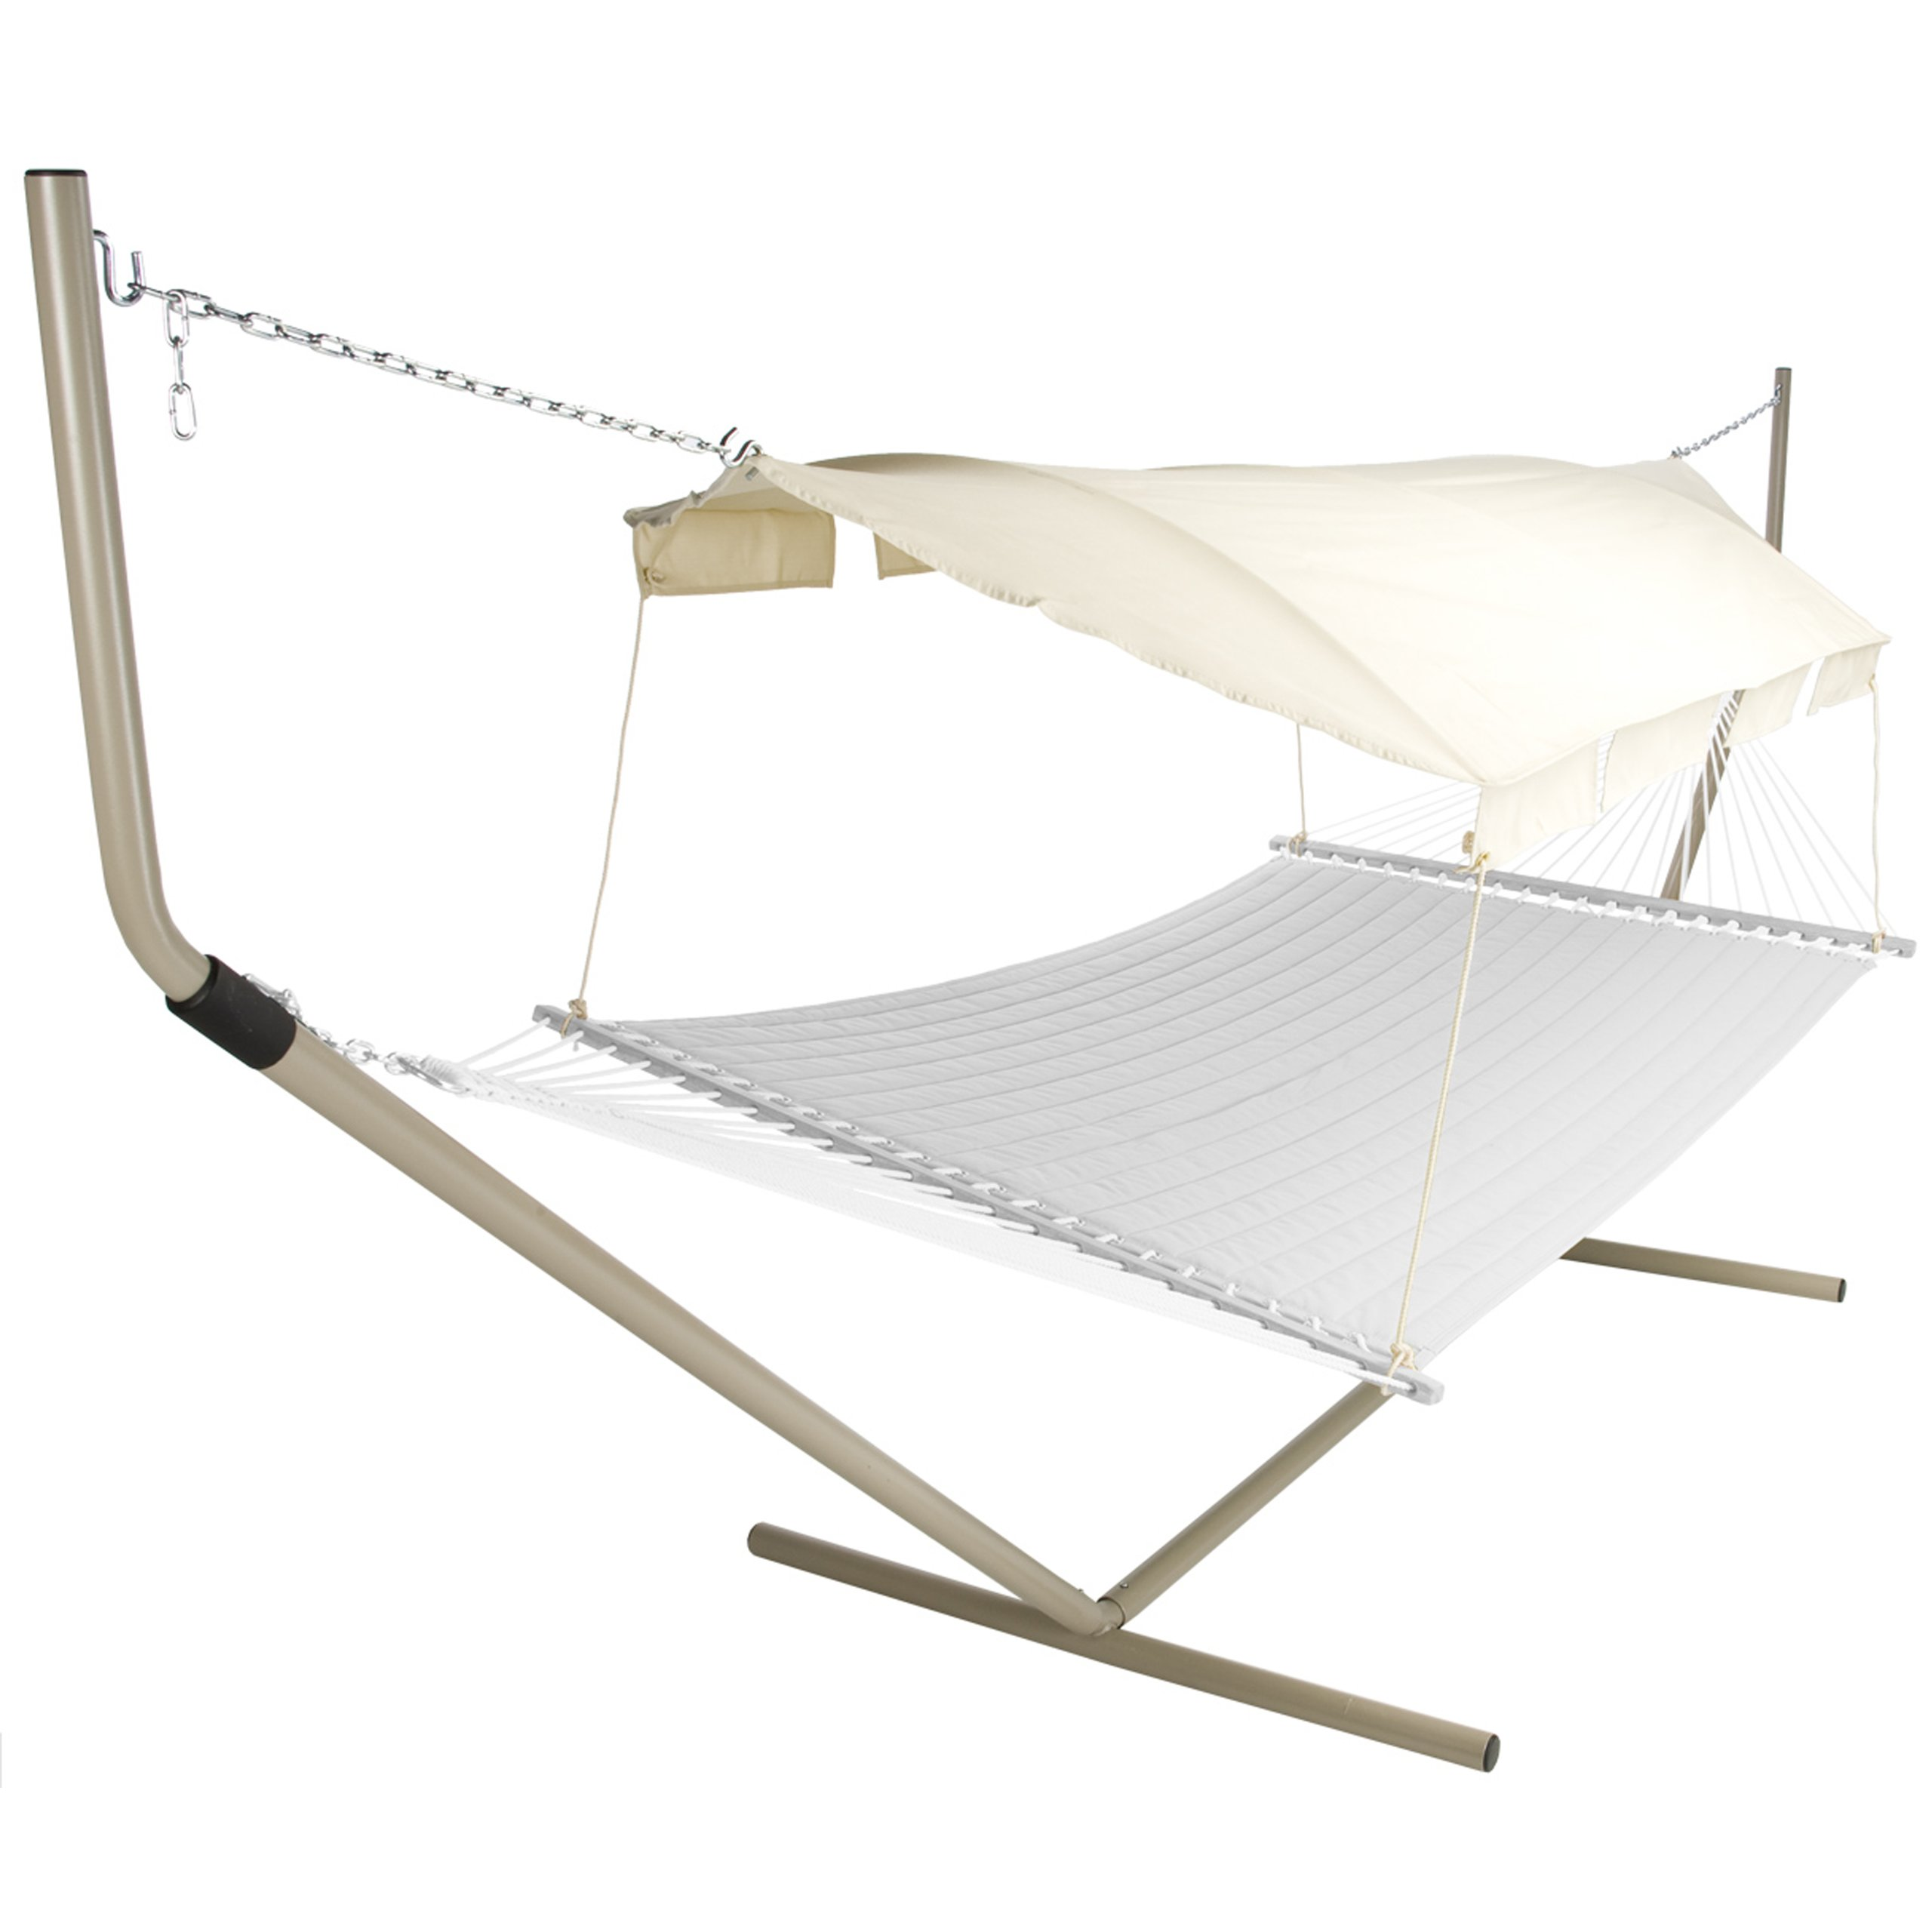 Pawley's Island Hammock Canopy with Tan/Natural Canopy Color and Taupe Support Poles